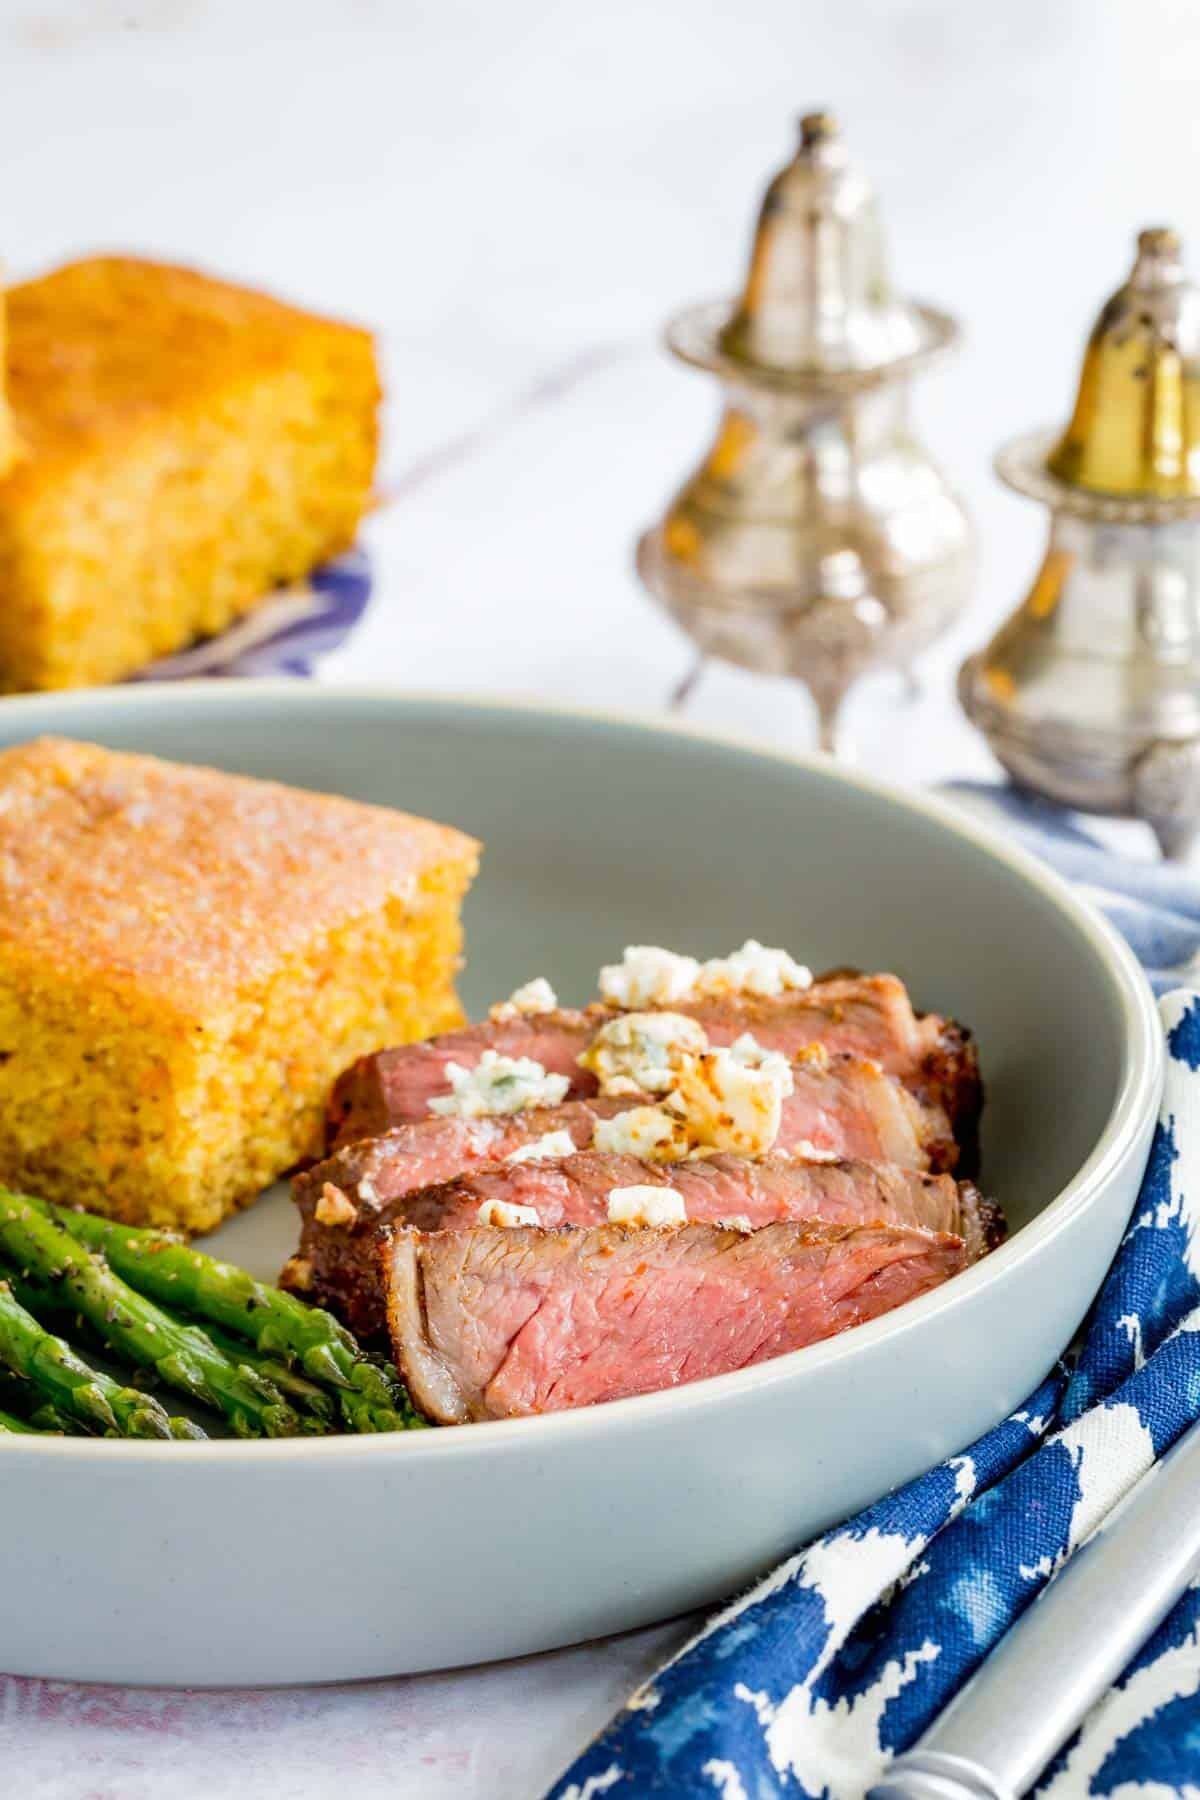 A Sliced-Up Black and Blue Steak Beside a Piece of Cornbread in a Bowl